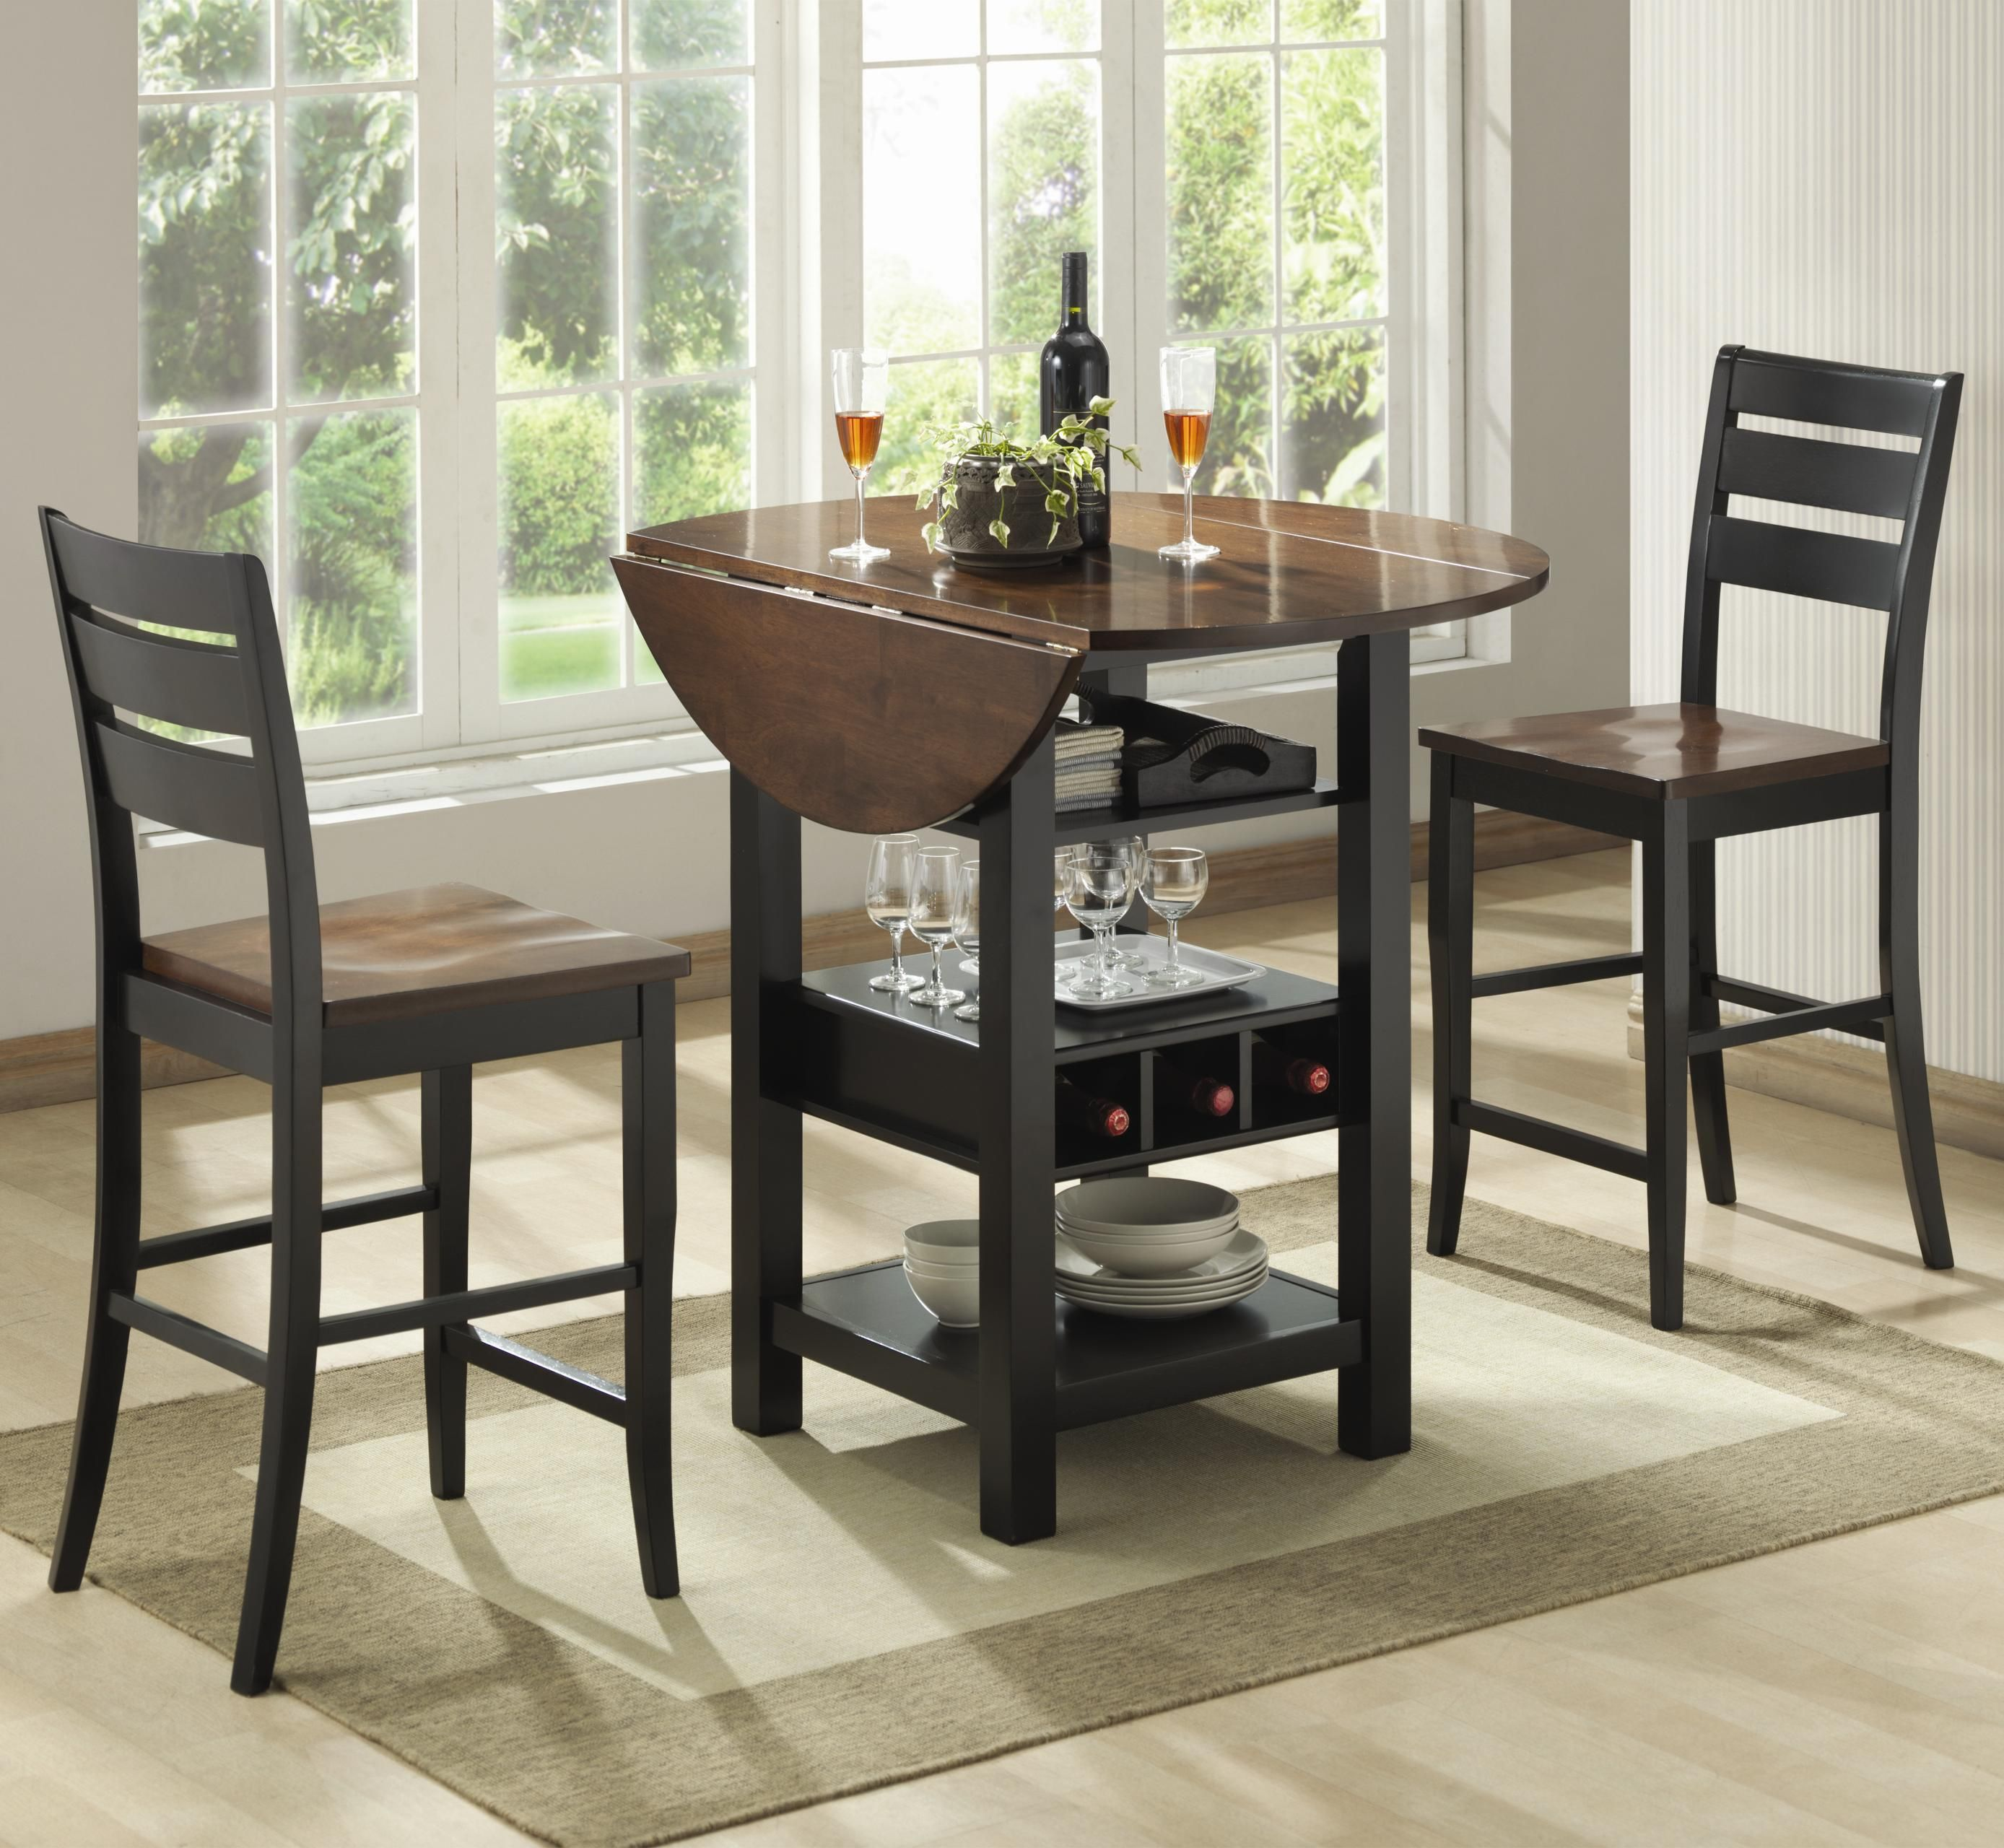 Pub Tables And Chairs 3 Piece Pub Table Set Pub Table And Chairs Counter Height Dining Table Black Round Dining Table